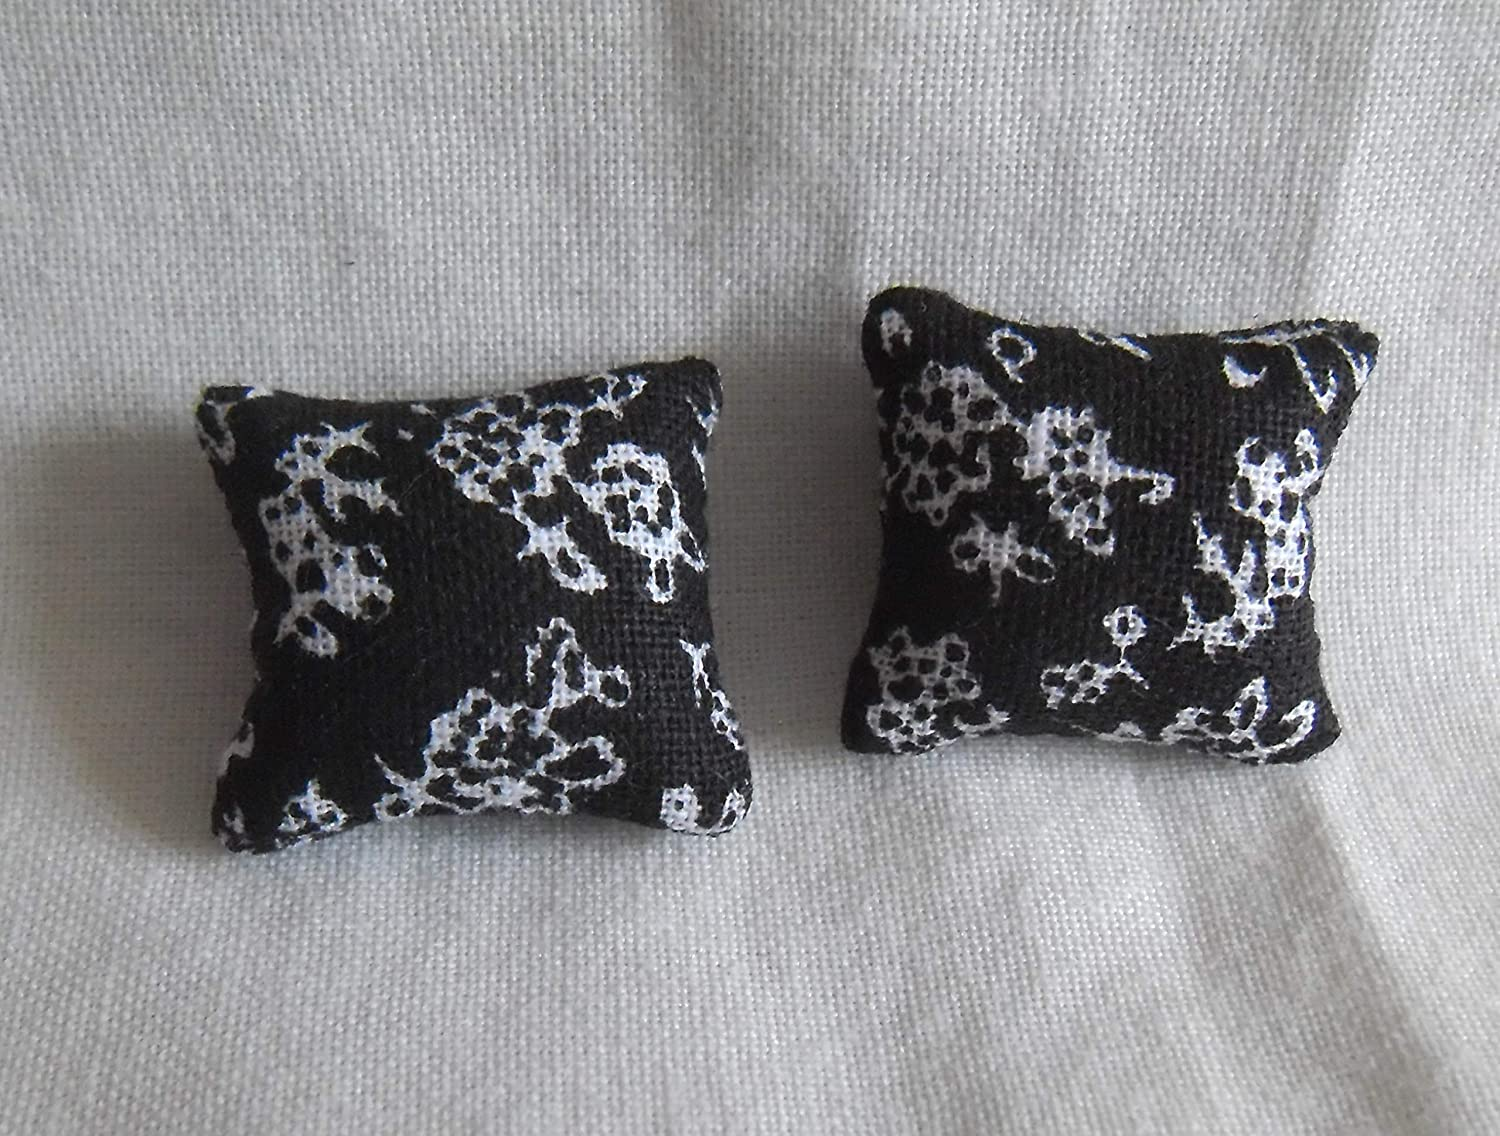 1//24th Scale Dolls House Printed Fabric Cushions Floral Design in Grey Black /& Gold